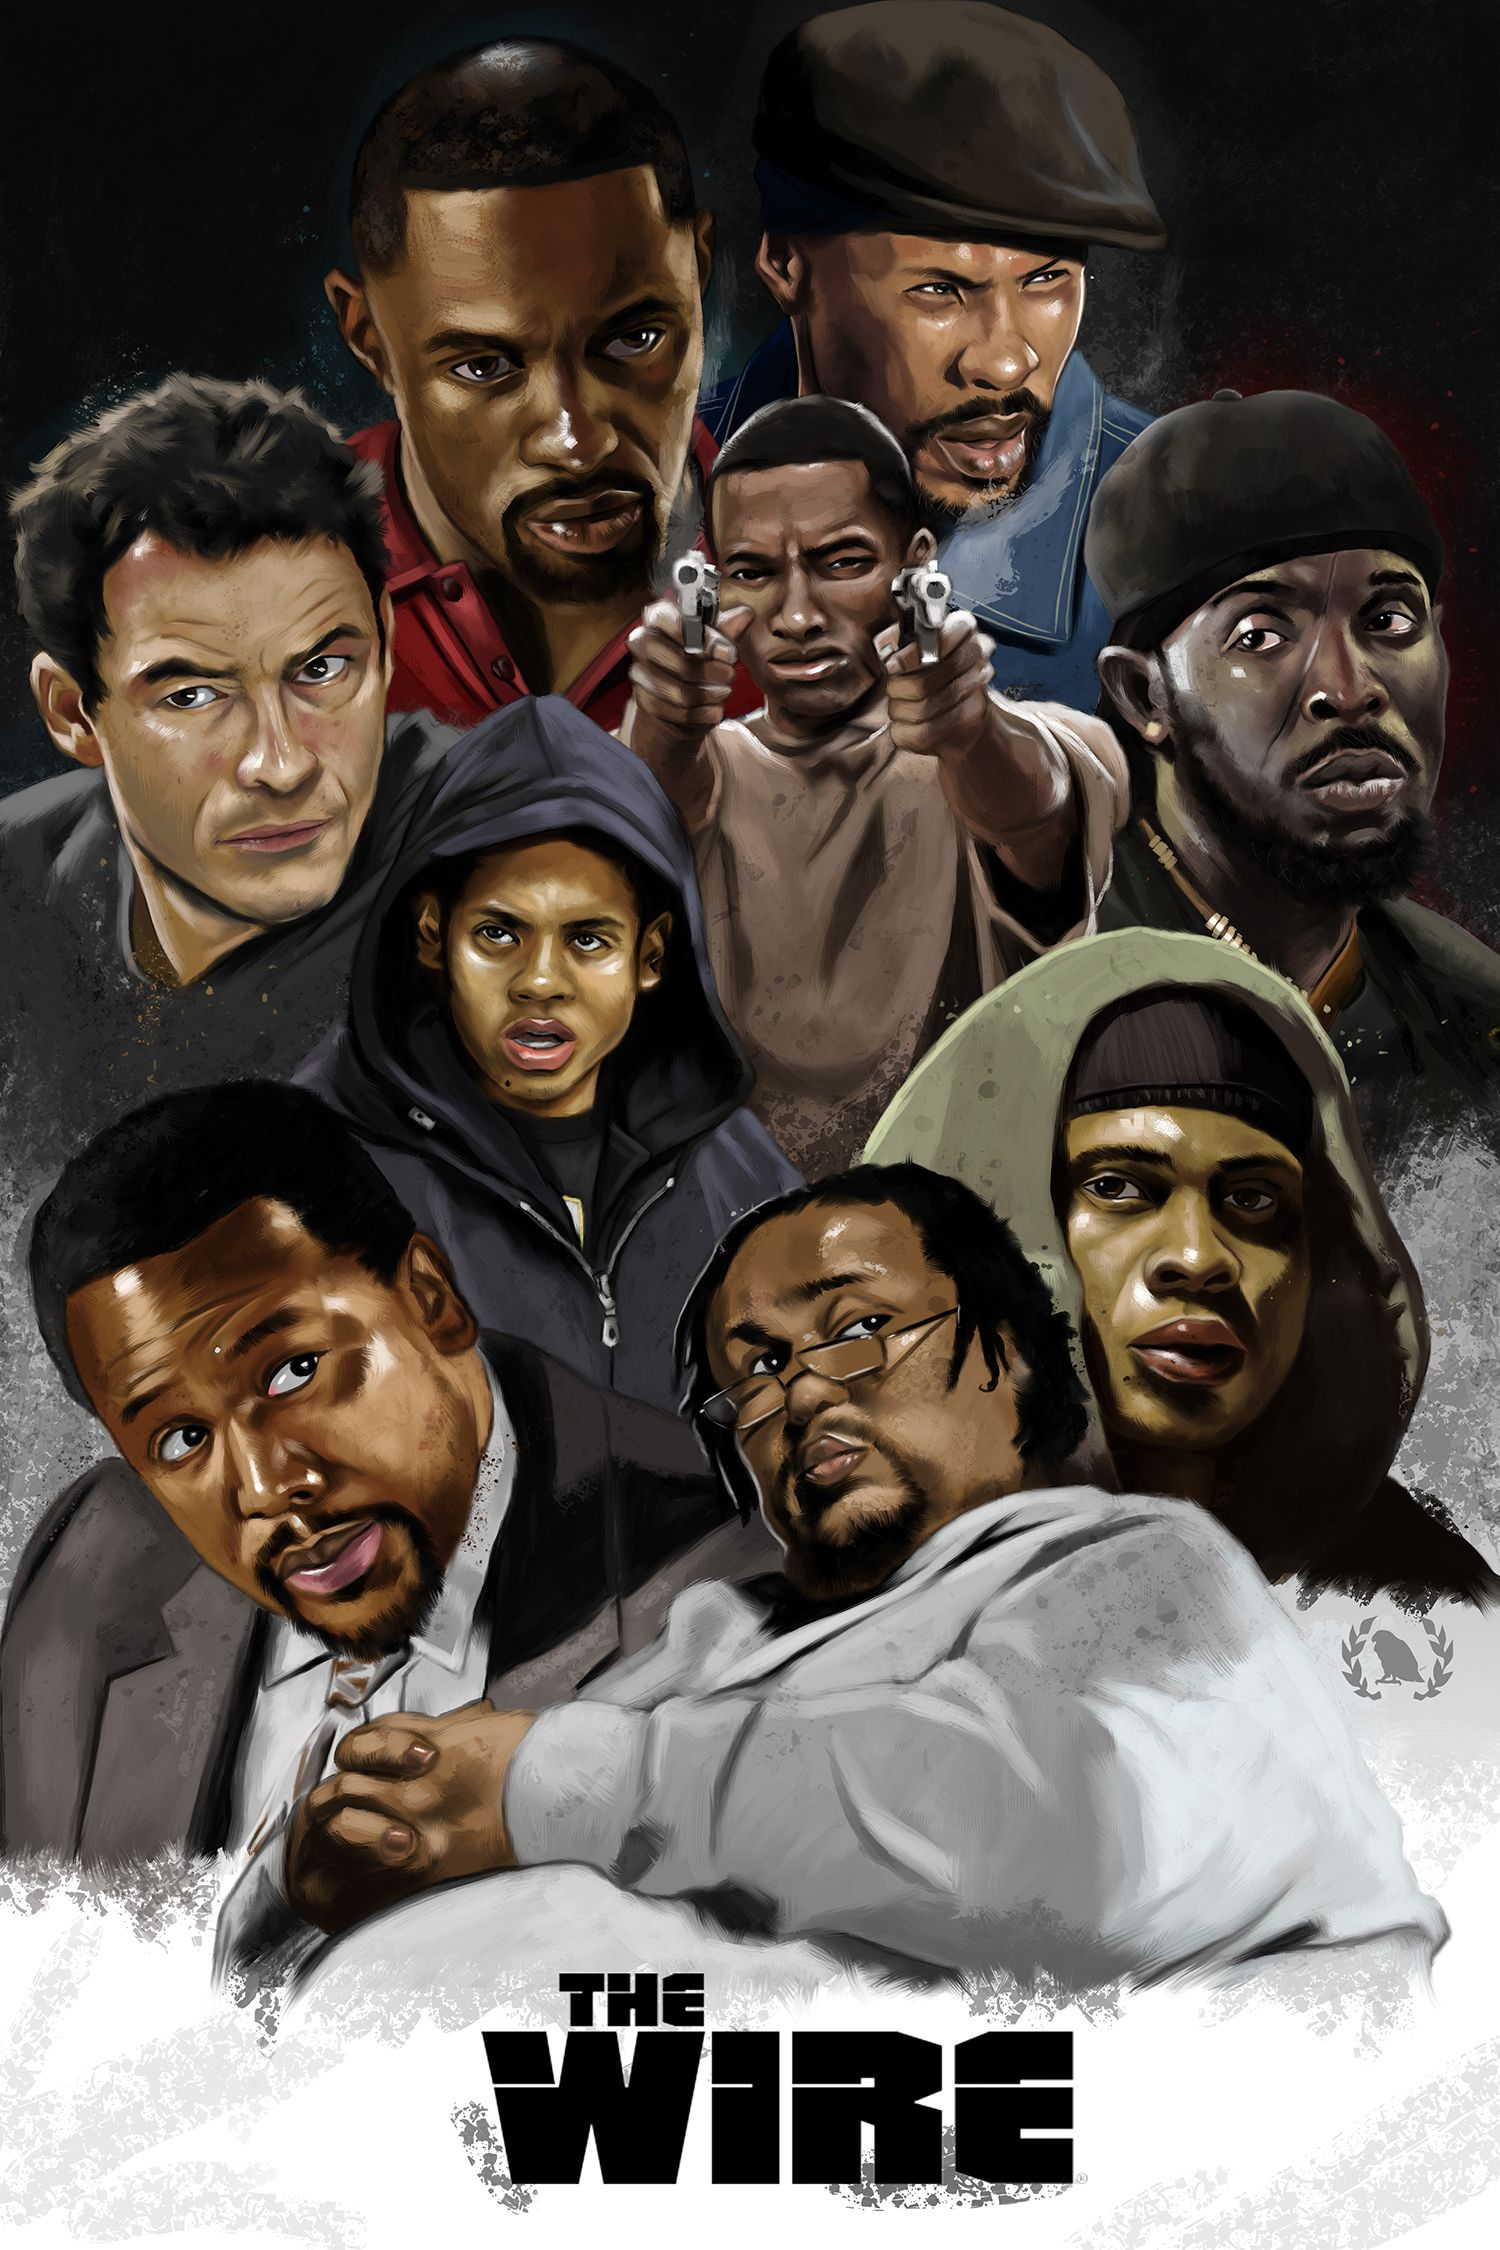 The Wire Hbo | The Wire Fan Art Art The Wire Tv Show The Wire Hbo Black Tv Shows